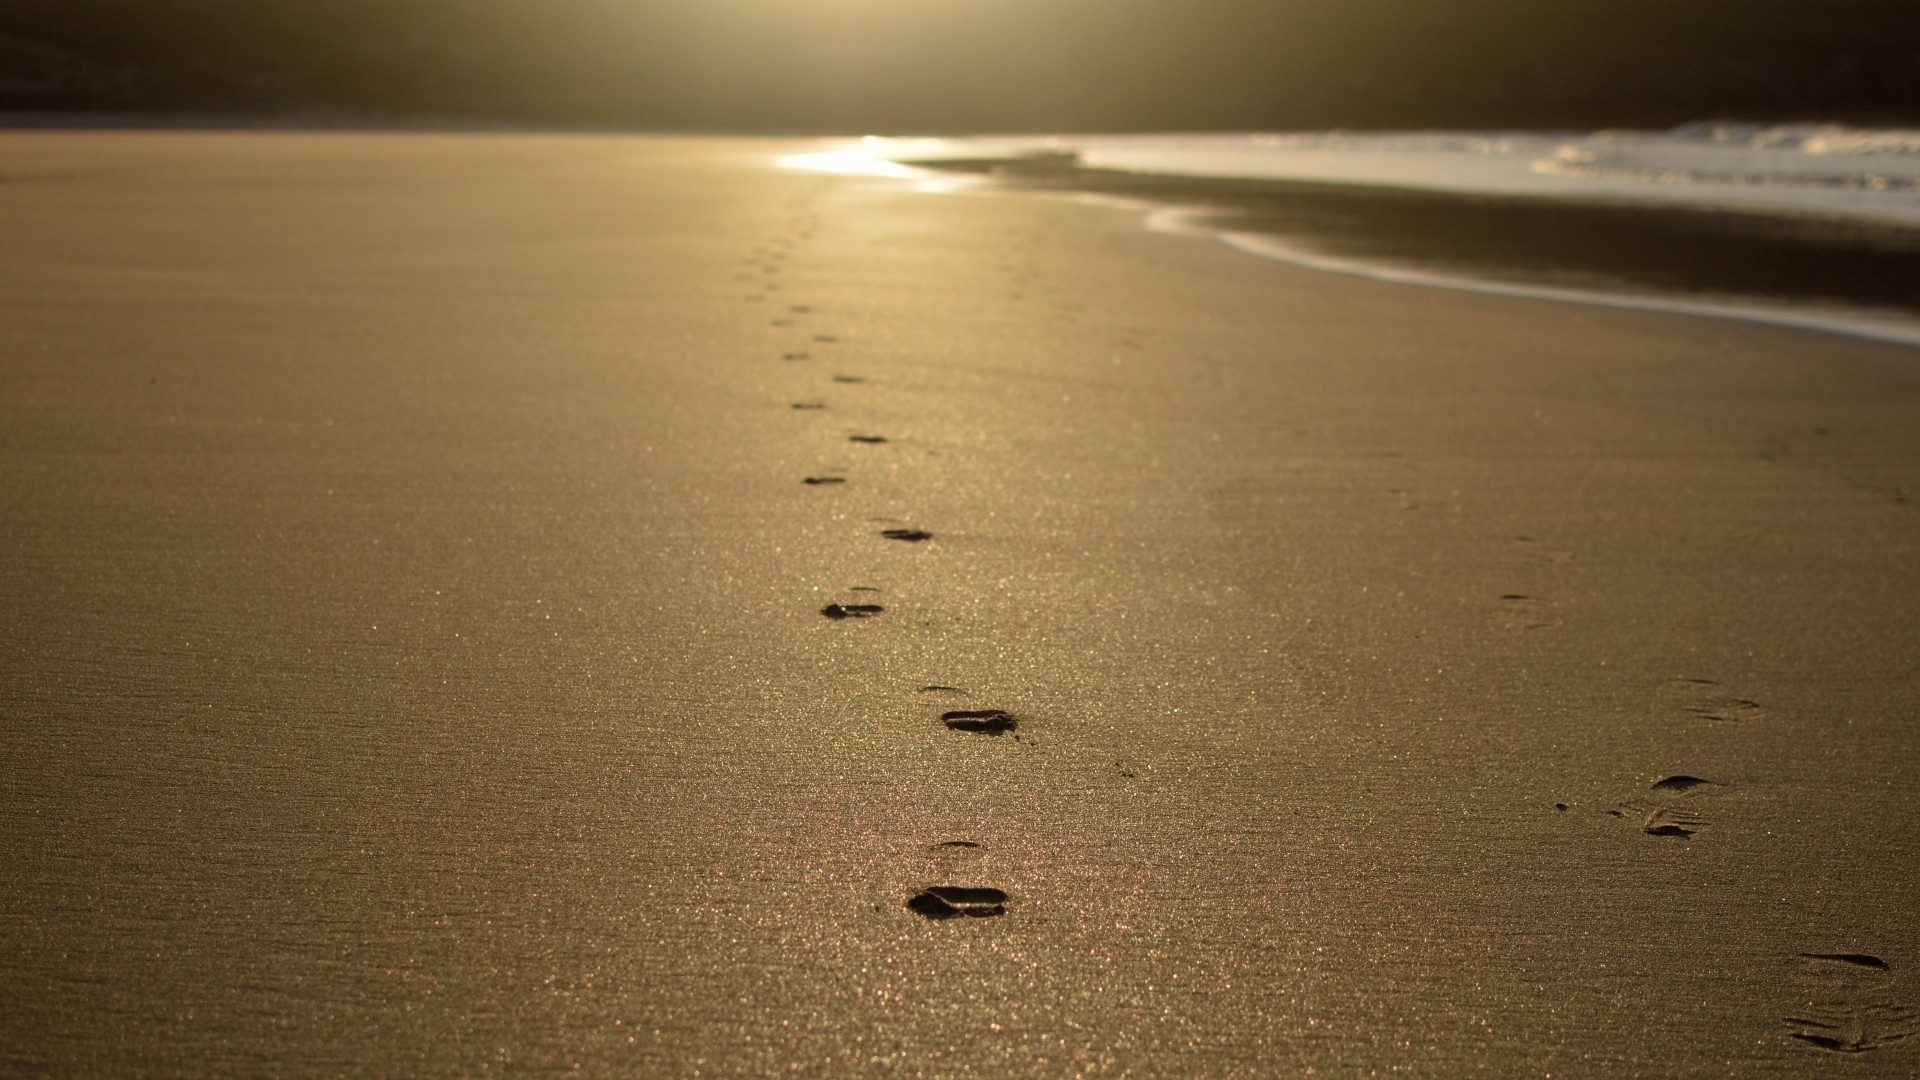 sand walk in free stock photo - public domain pictures